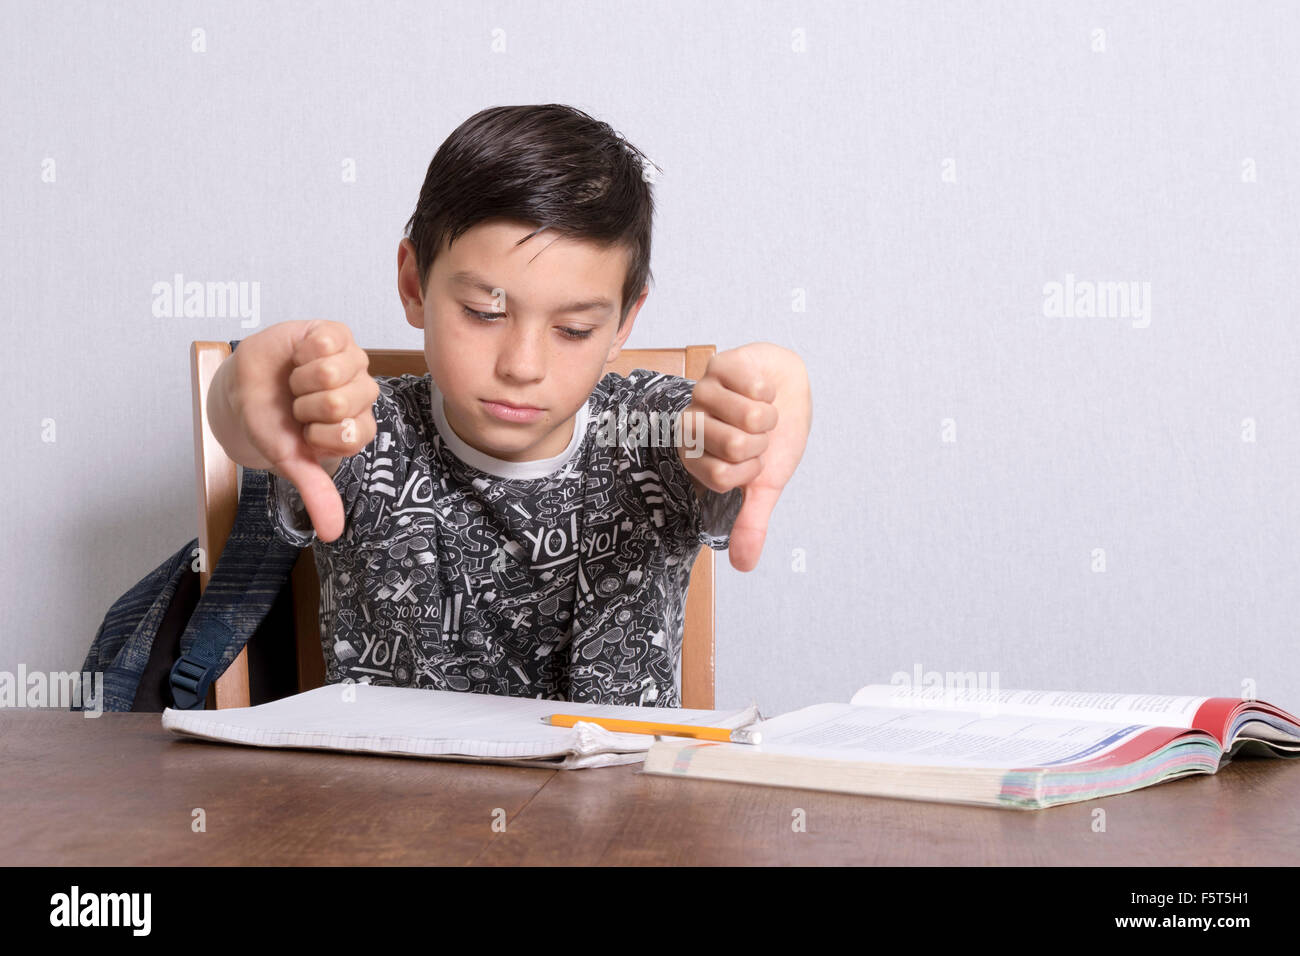 Young boy giving thumbs down over homework - Stock Image